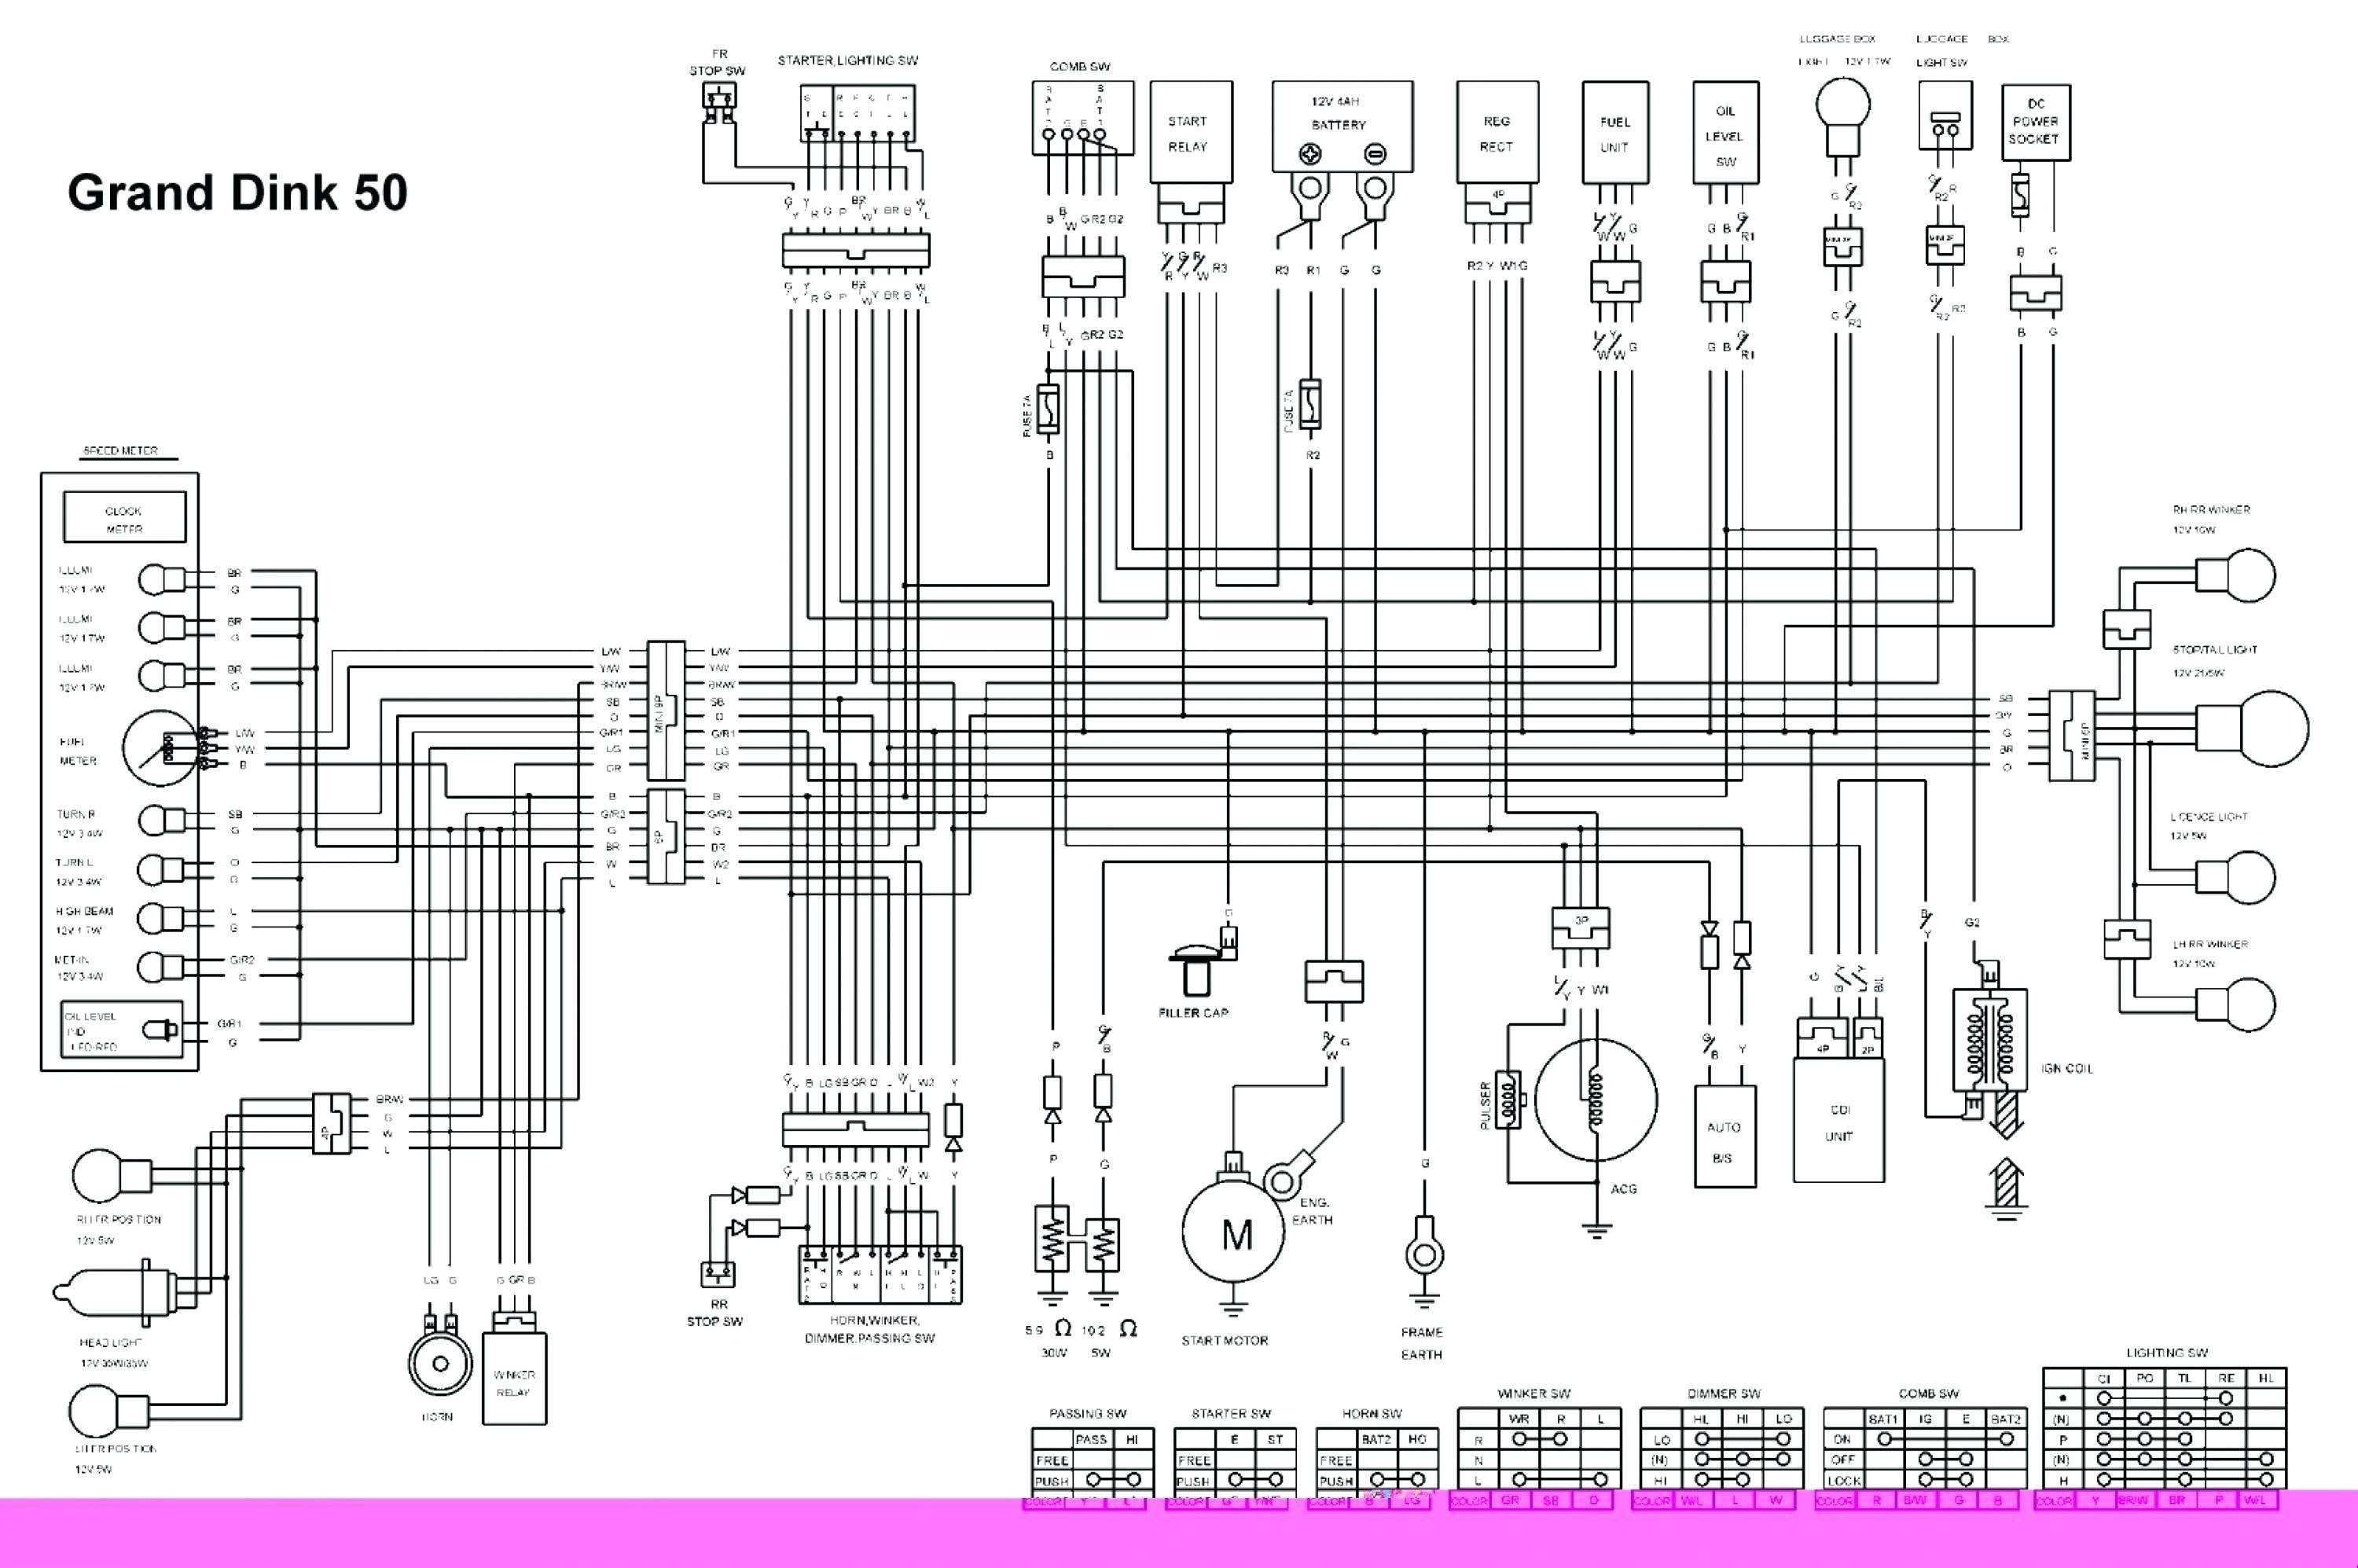 Wiring Diagram Outlets Beautiful Wiring Diagram Outlets Splendid Line Wiring Diagram Help Signalsbra Diagram Home Electrical Wiring Electrical Wiring Diagram